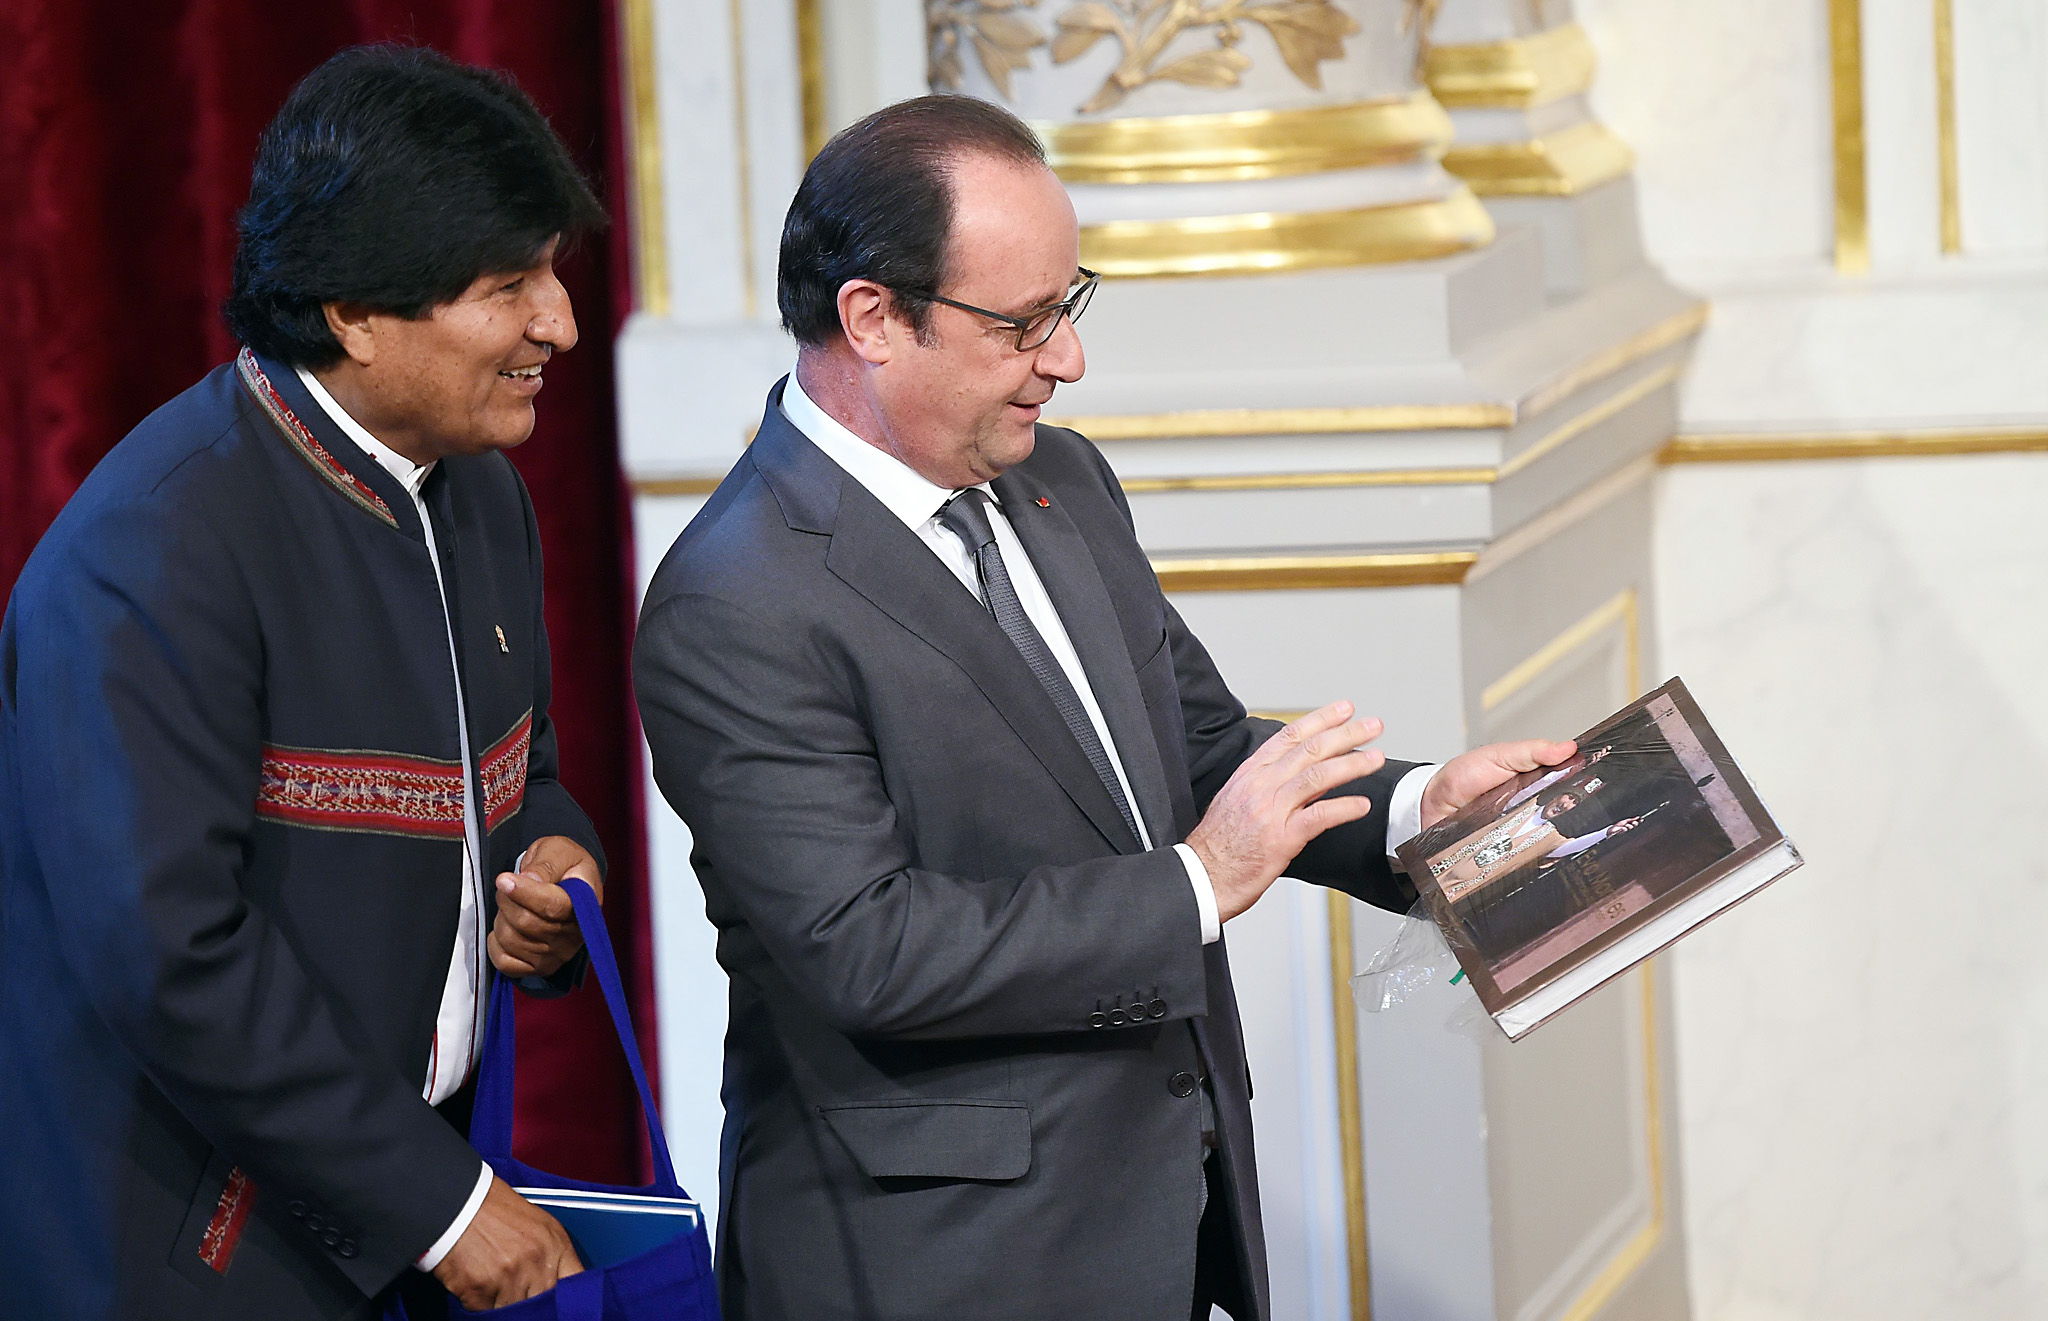 Bolivian President Evo Morales (L) offer...Bolivian President Evo Morales (L) offers a book to French President Francois Hollande after a joint press conference on November 9, 2015 at the Elysee Presidential Palace in Paris. AFP PHOTO / STEPHANE DE SAKUTINSTEPHANE DE SAKUTIN/AFP/Getty Images